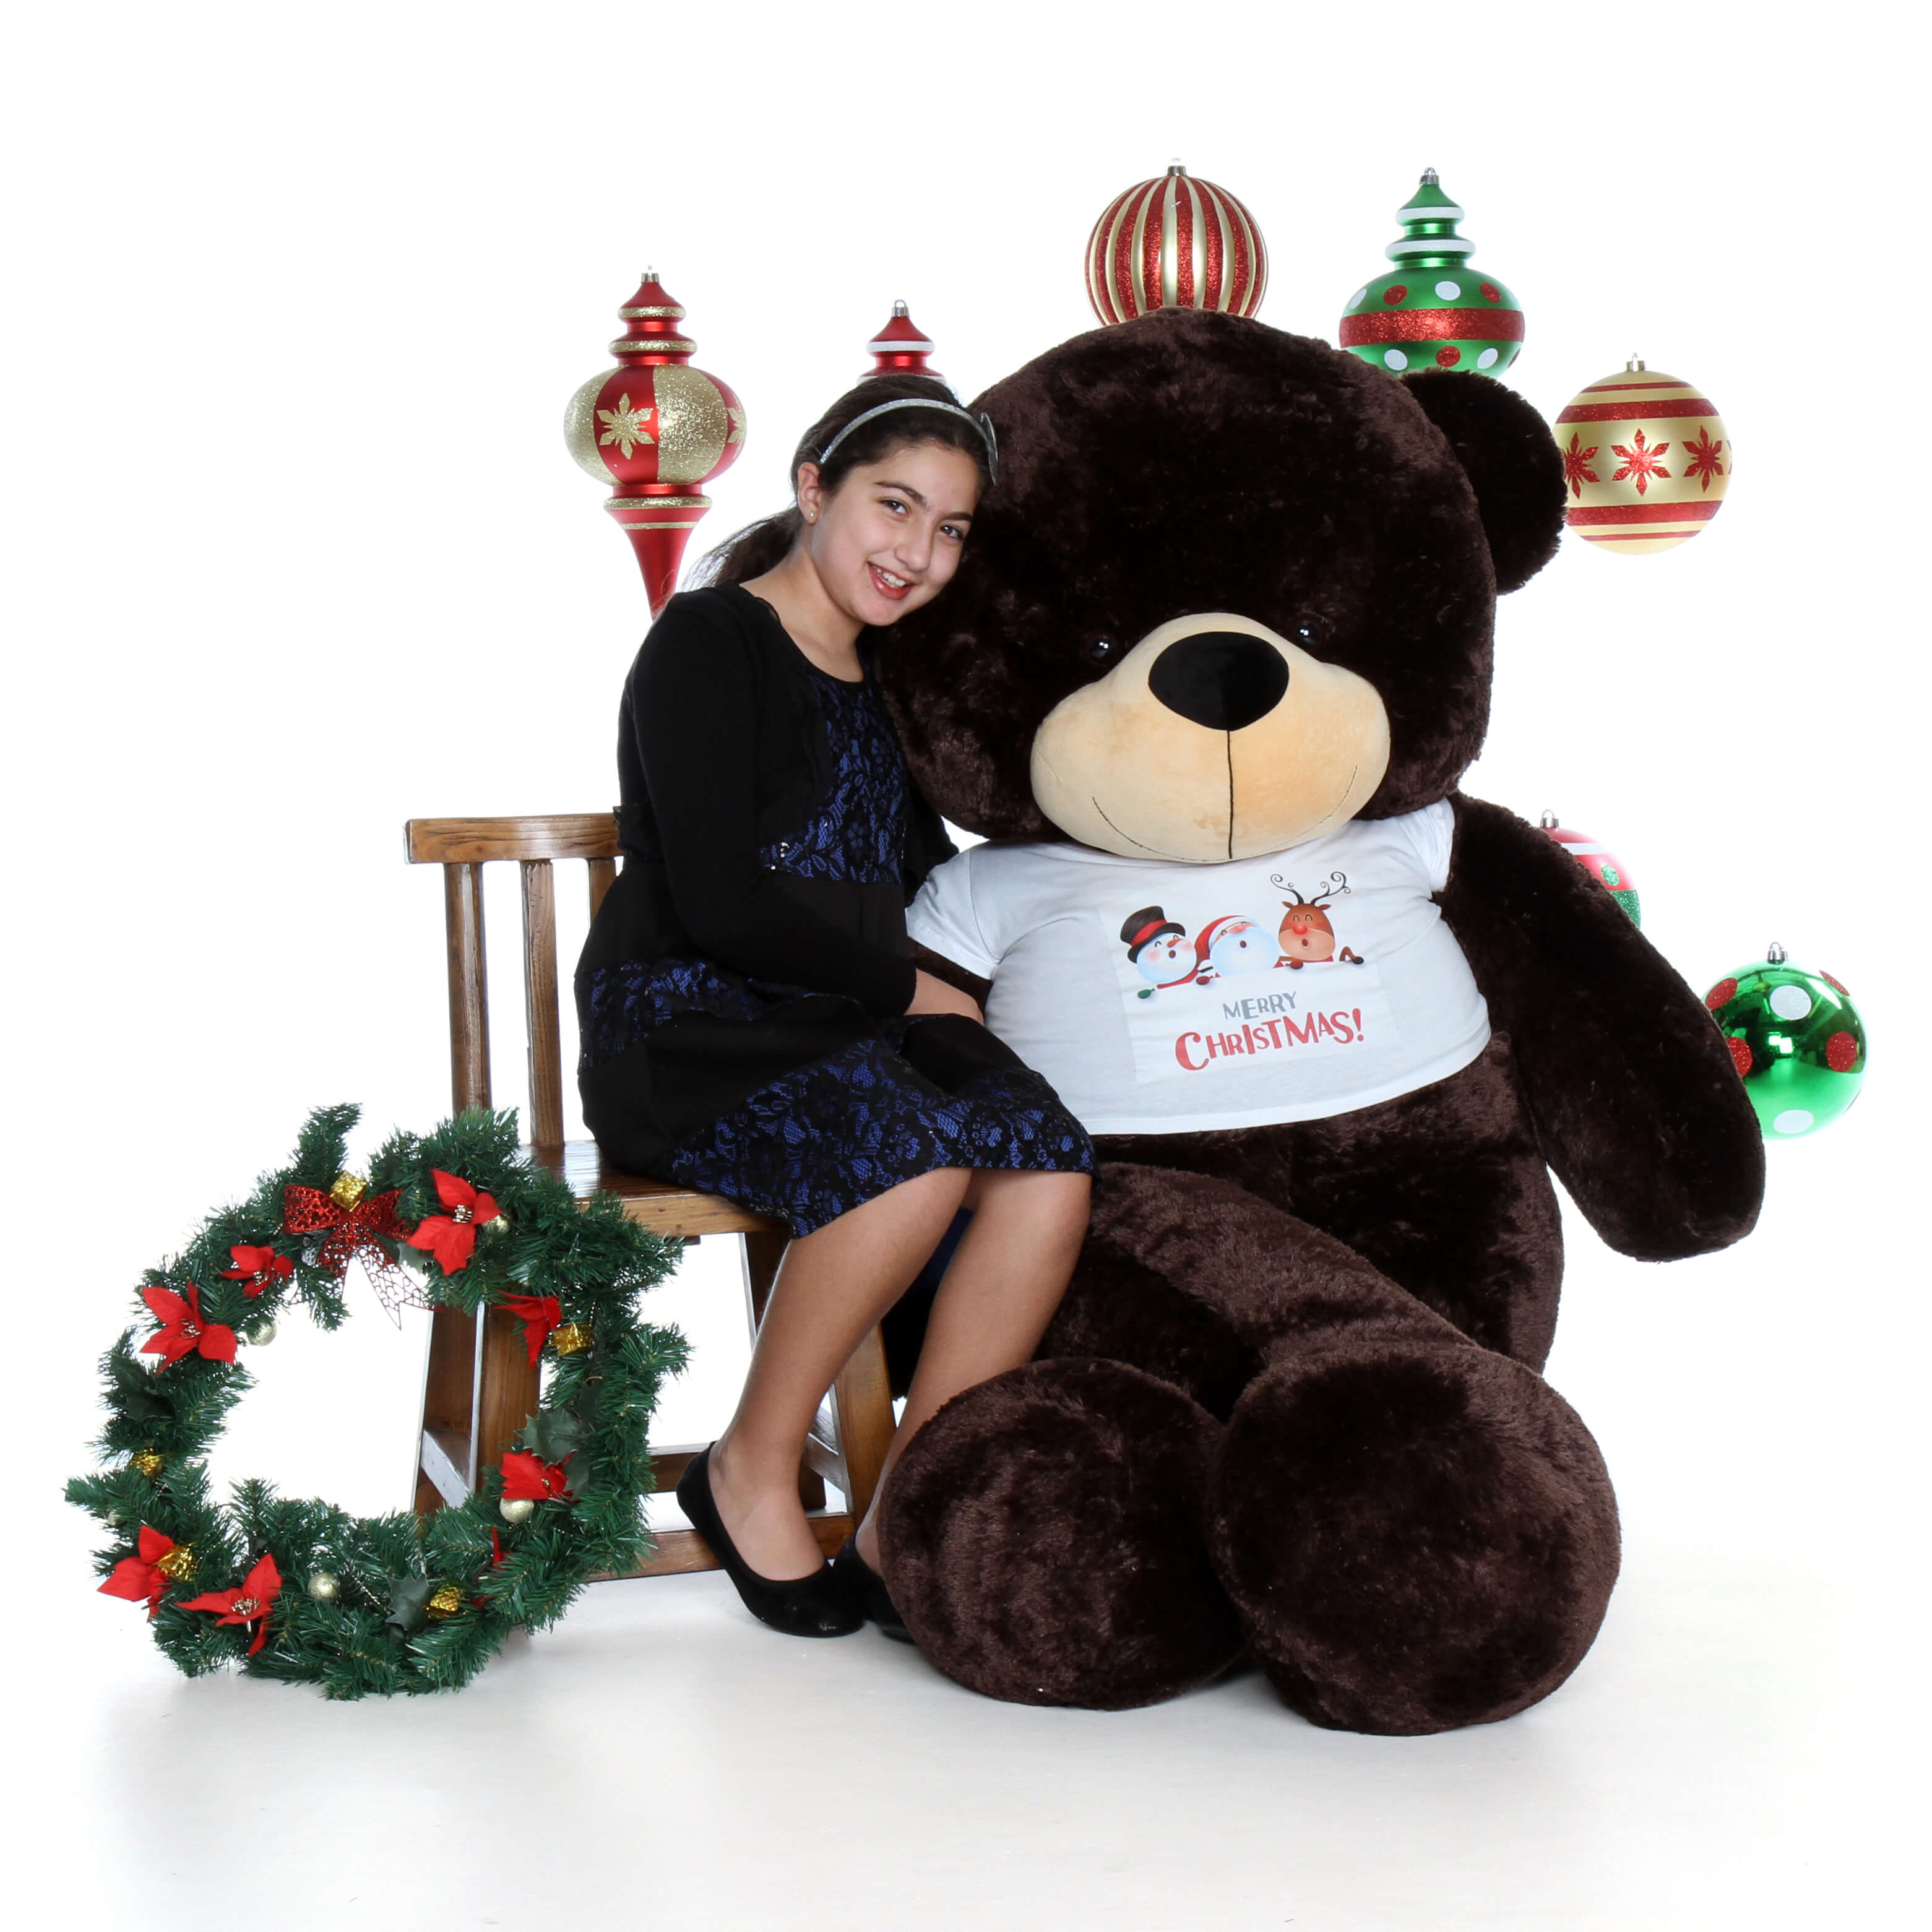 6ft-brownie-cuddles-dark-brown-teddy-bear-christmas-shirt1.jpg